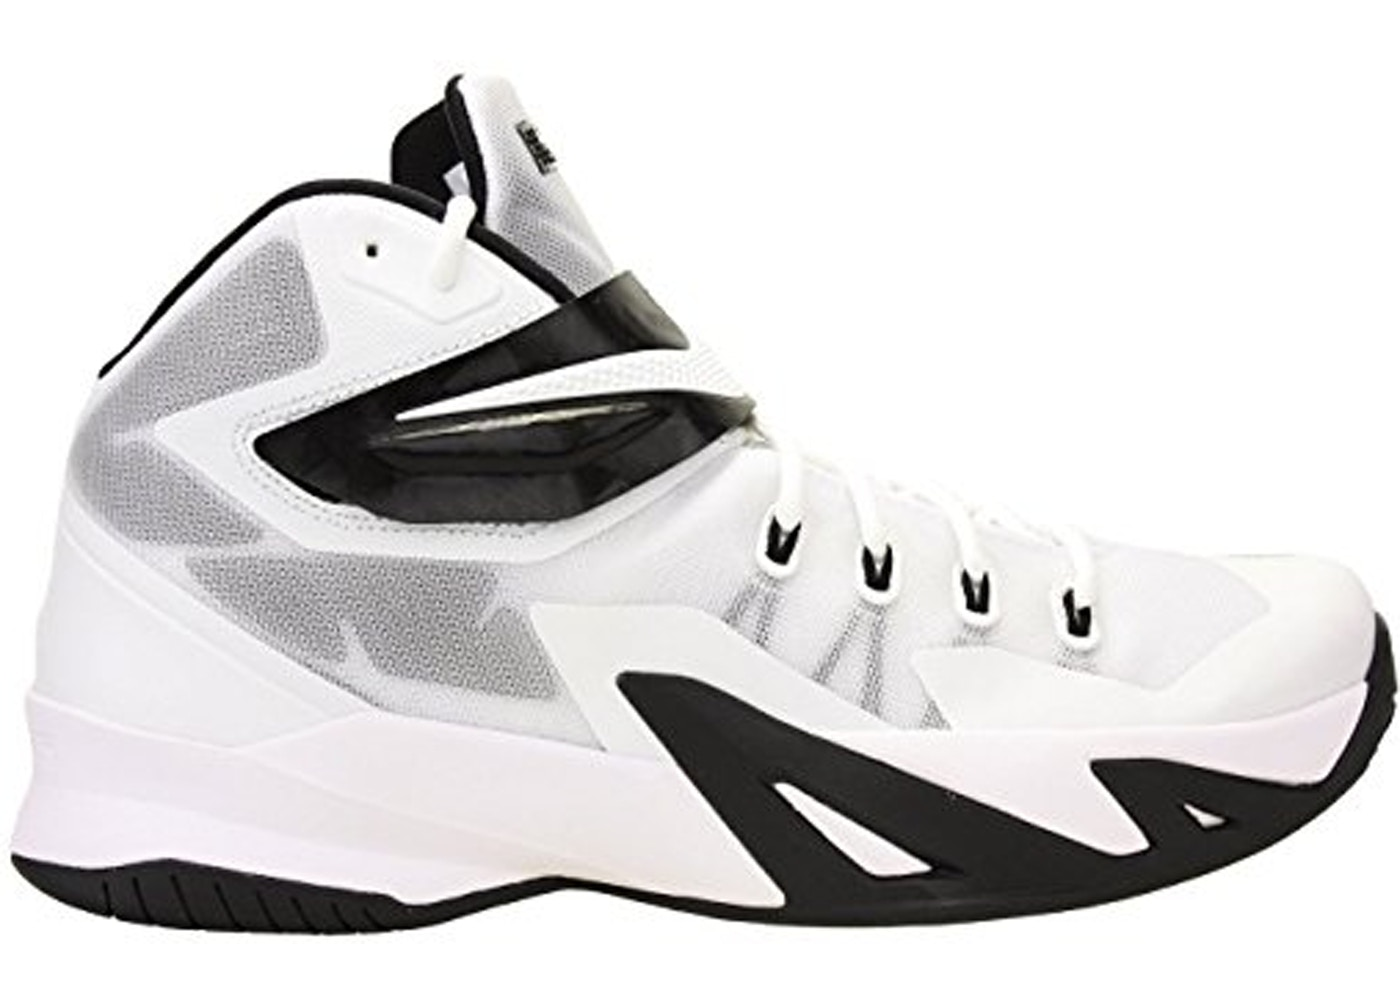 new product 157dd ebe49 Nike LeBron Zoom Soldier 8 TB White Black - 653648-100